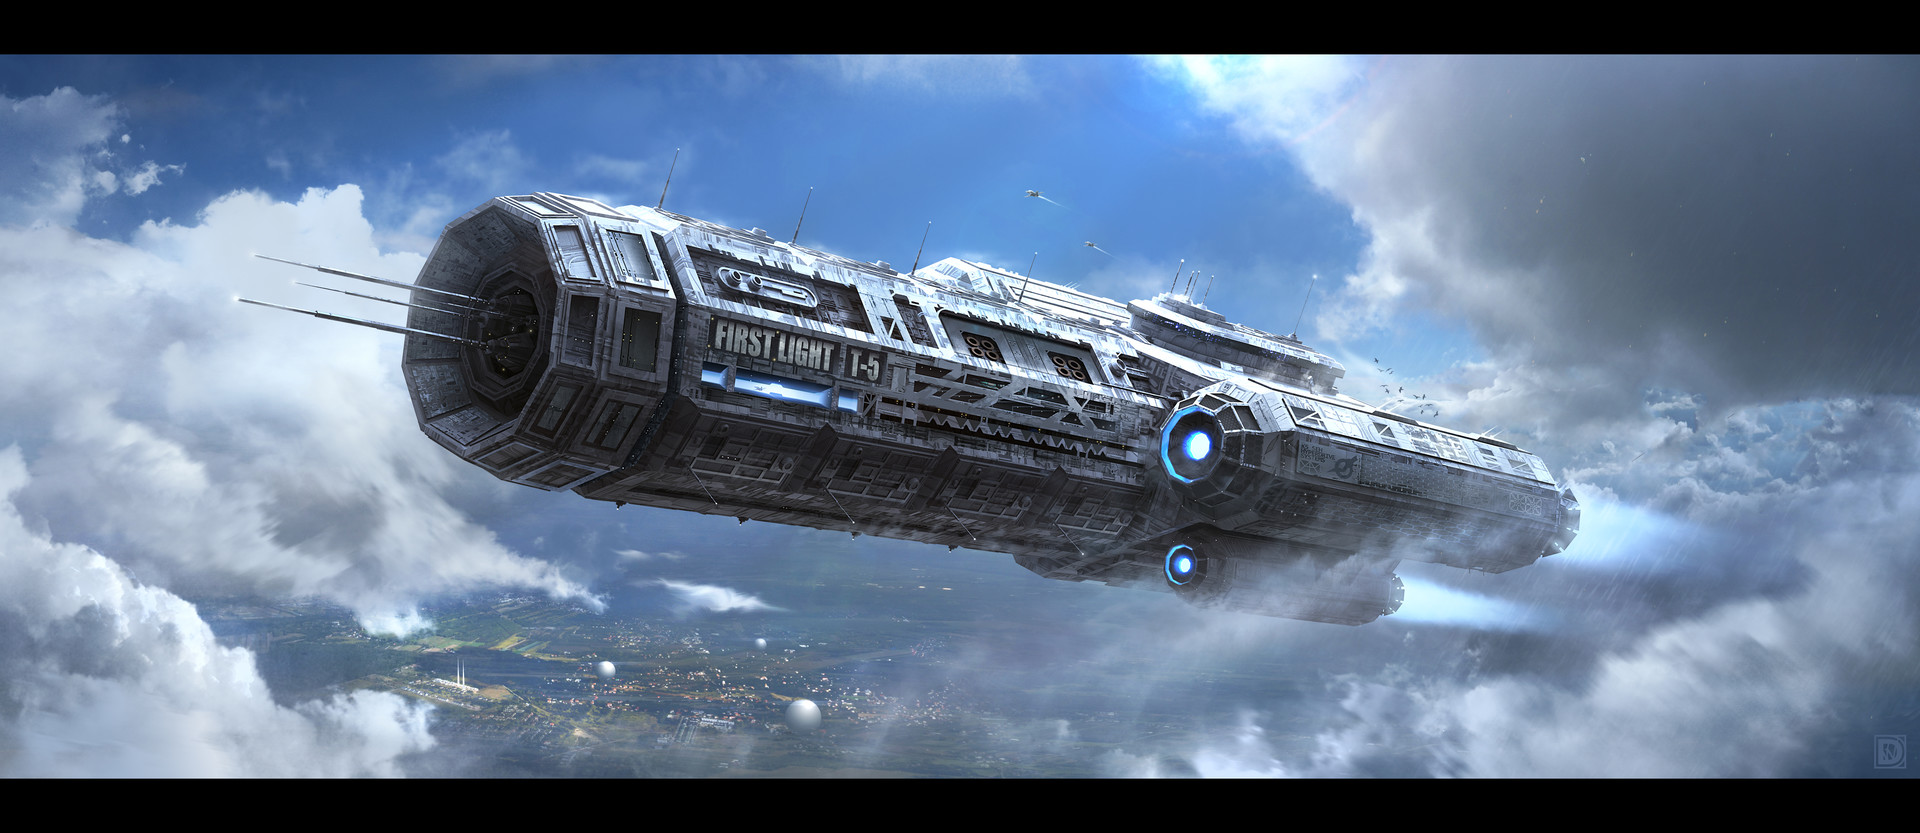 General 1920x833 spaceship science fiction sky clouds flying ship blue